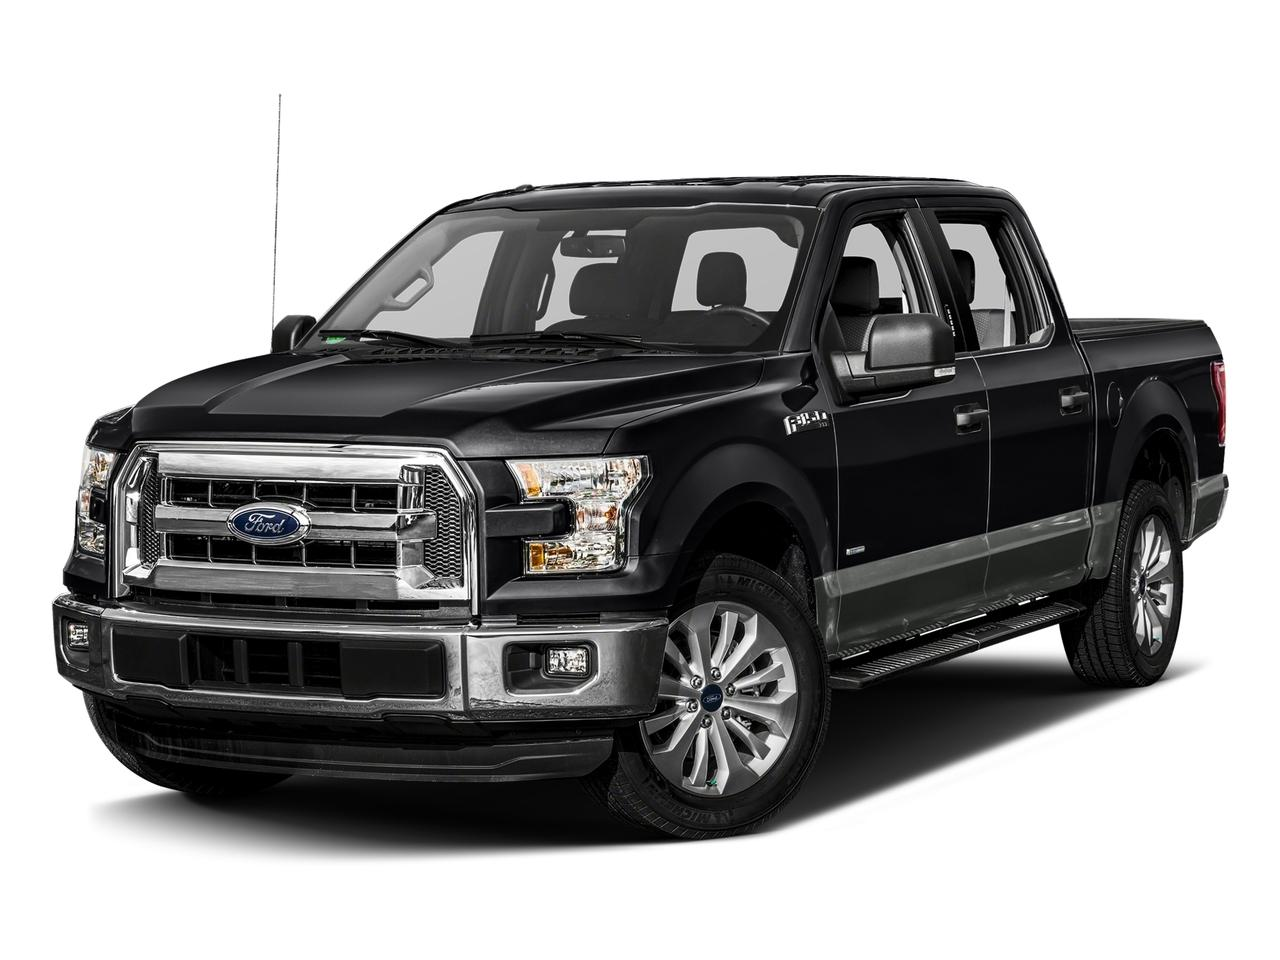 2017 Ford F-150 Vehicle Photo in Allentown, PA 18103